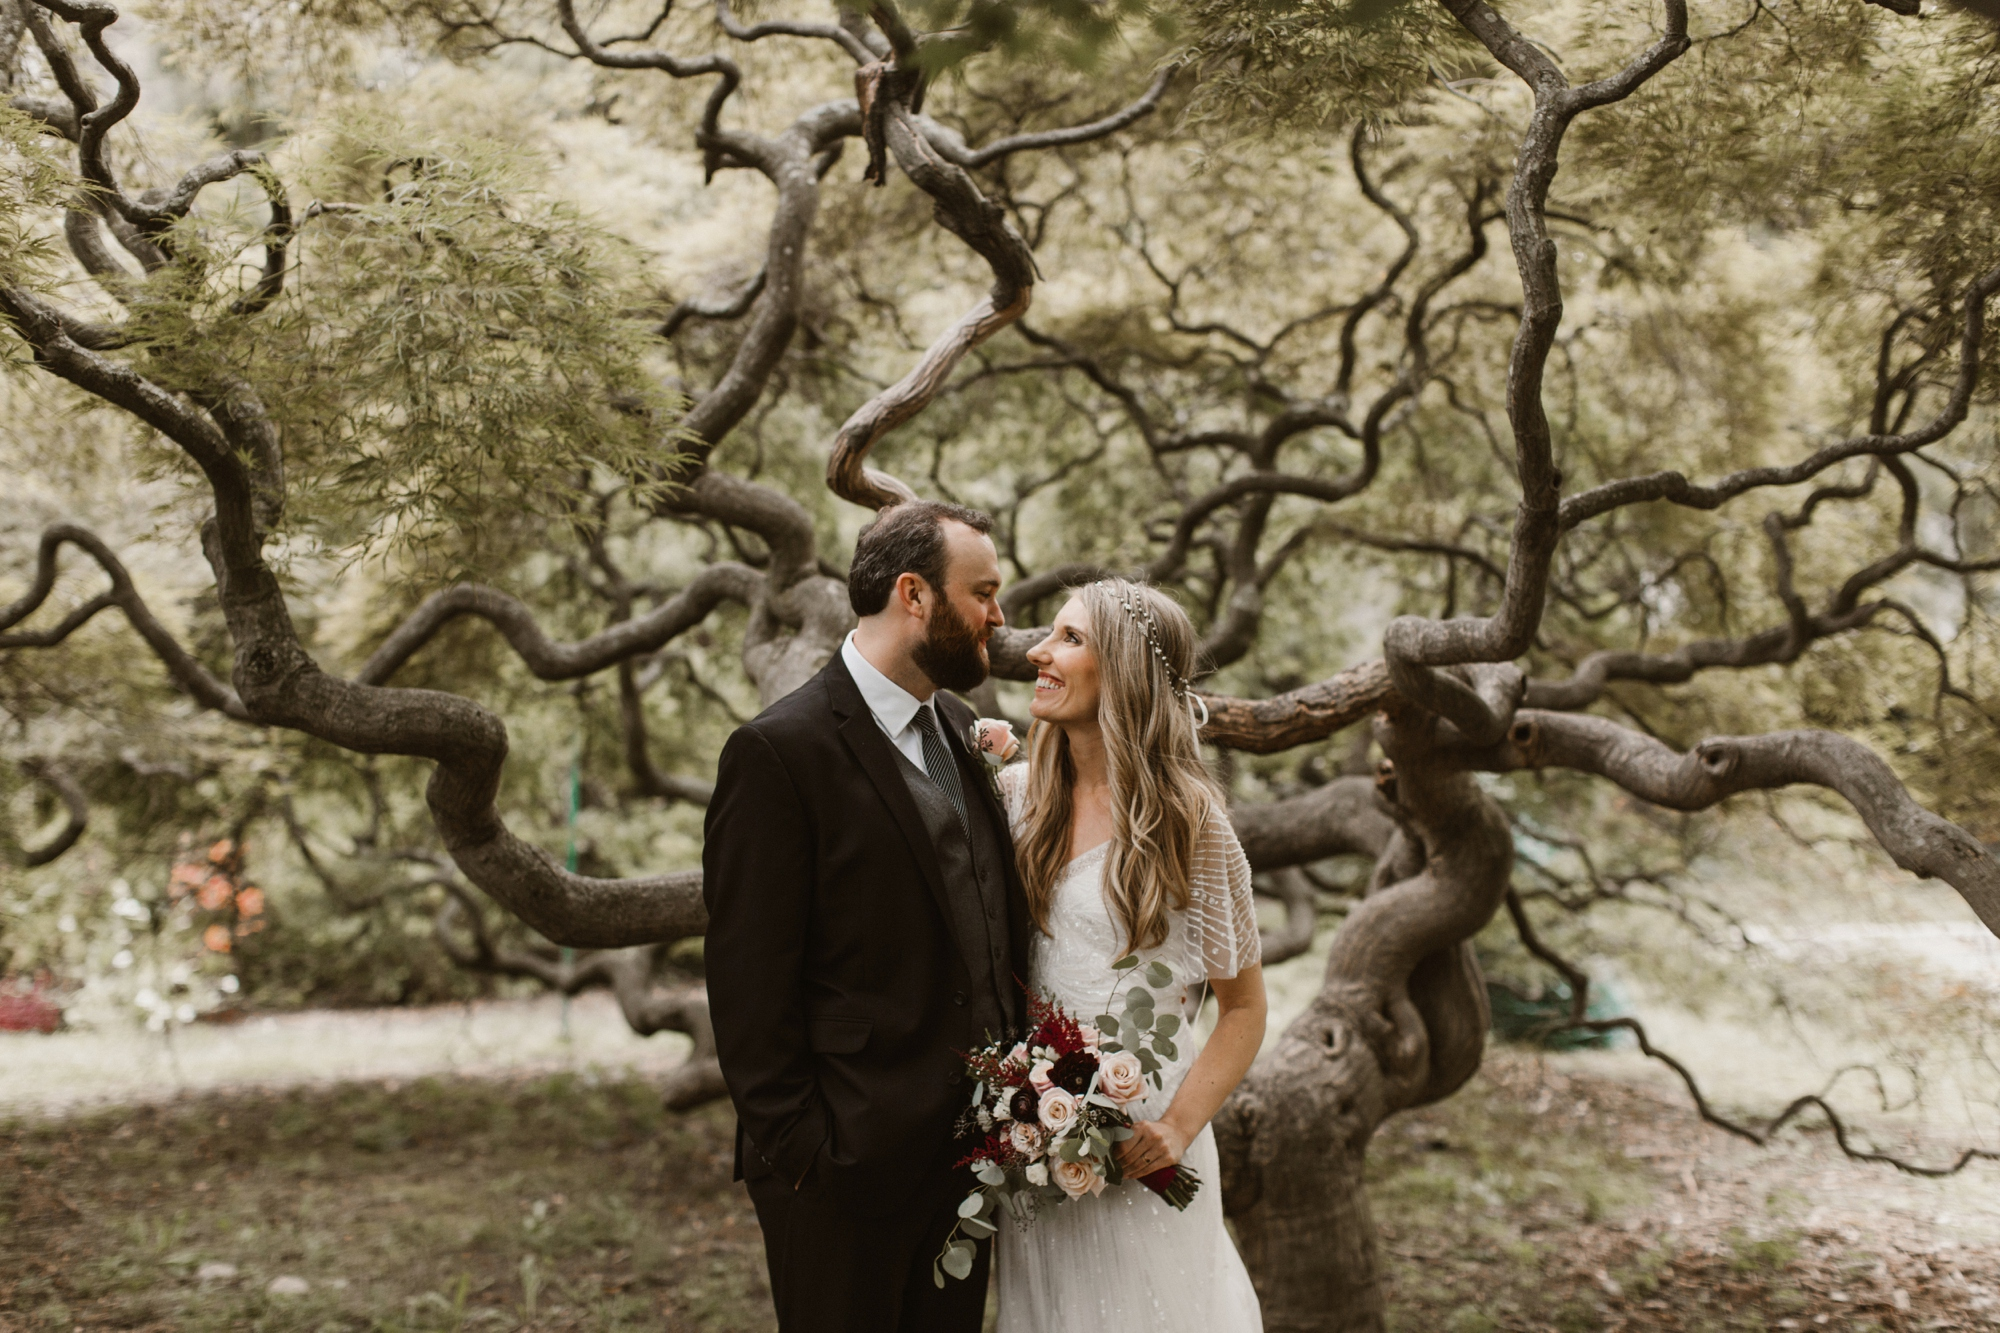 cylburn-arboretum-baltimore-maryland-earthy-boho-wedding-photographer-kate-ann-photography-photo_0243